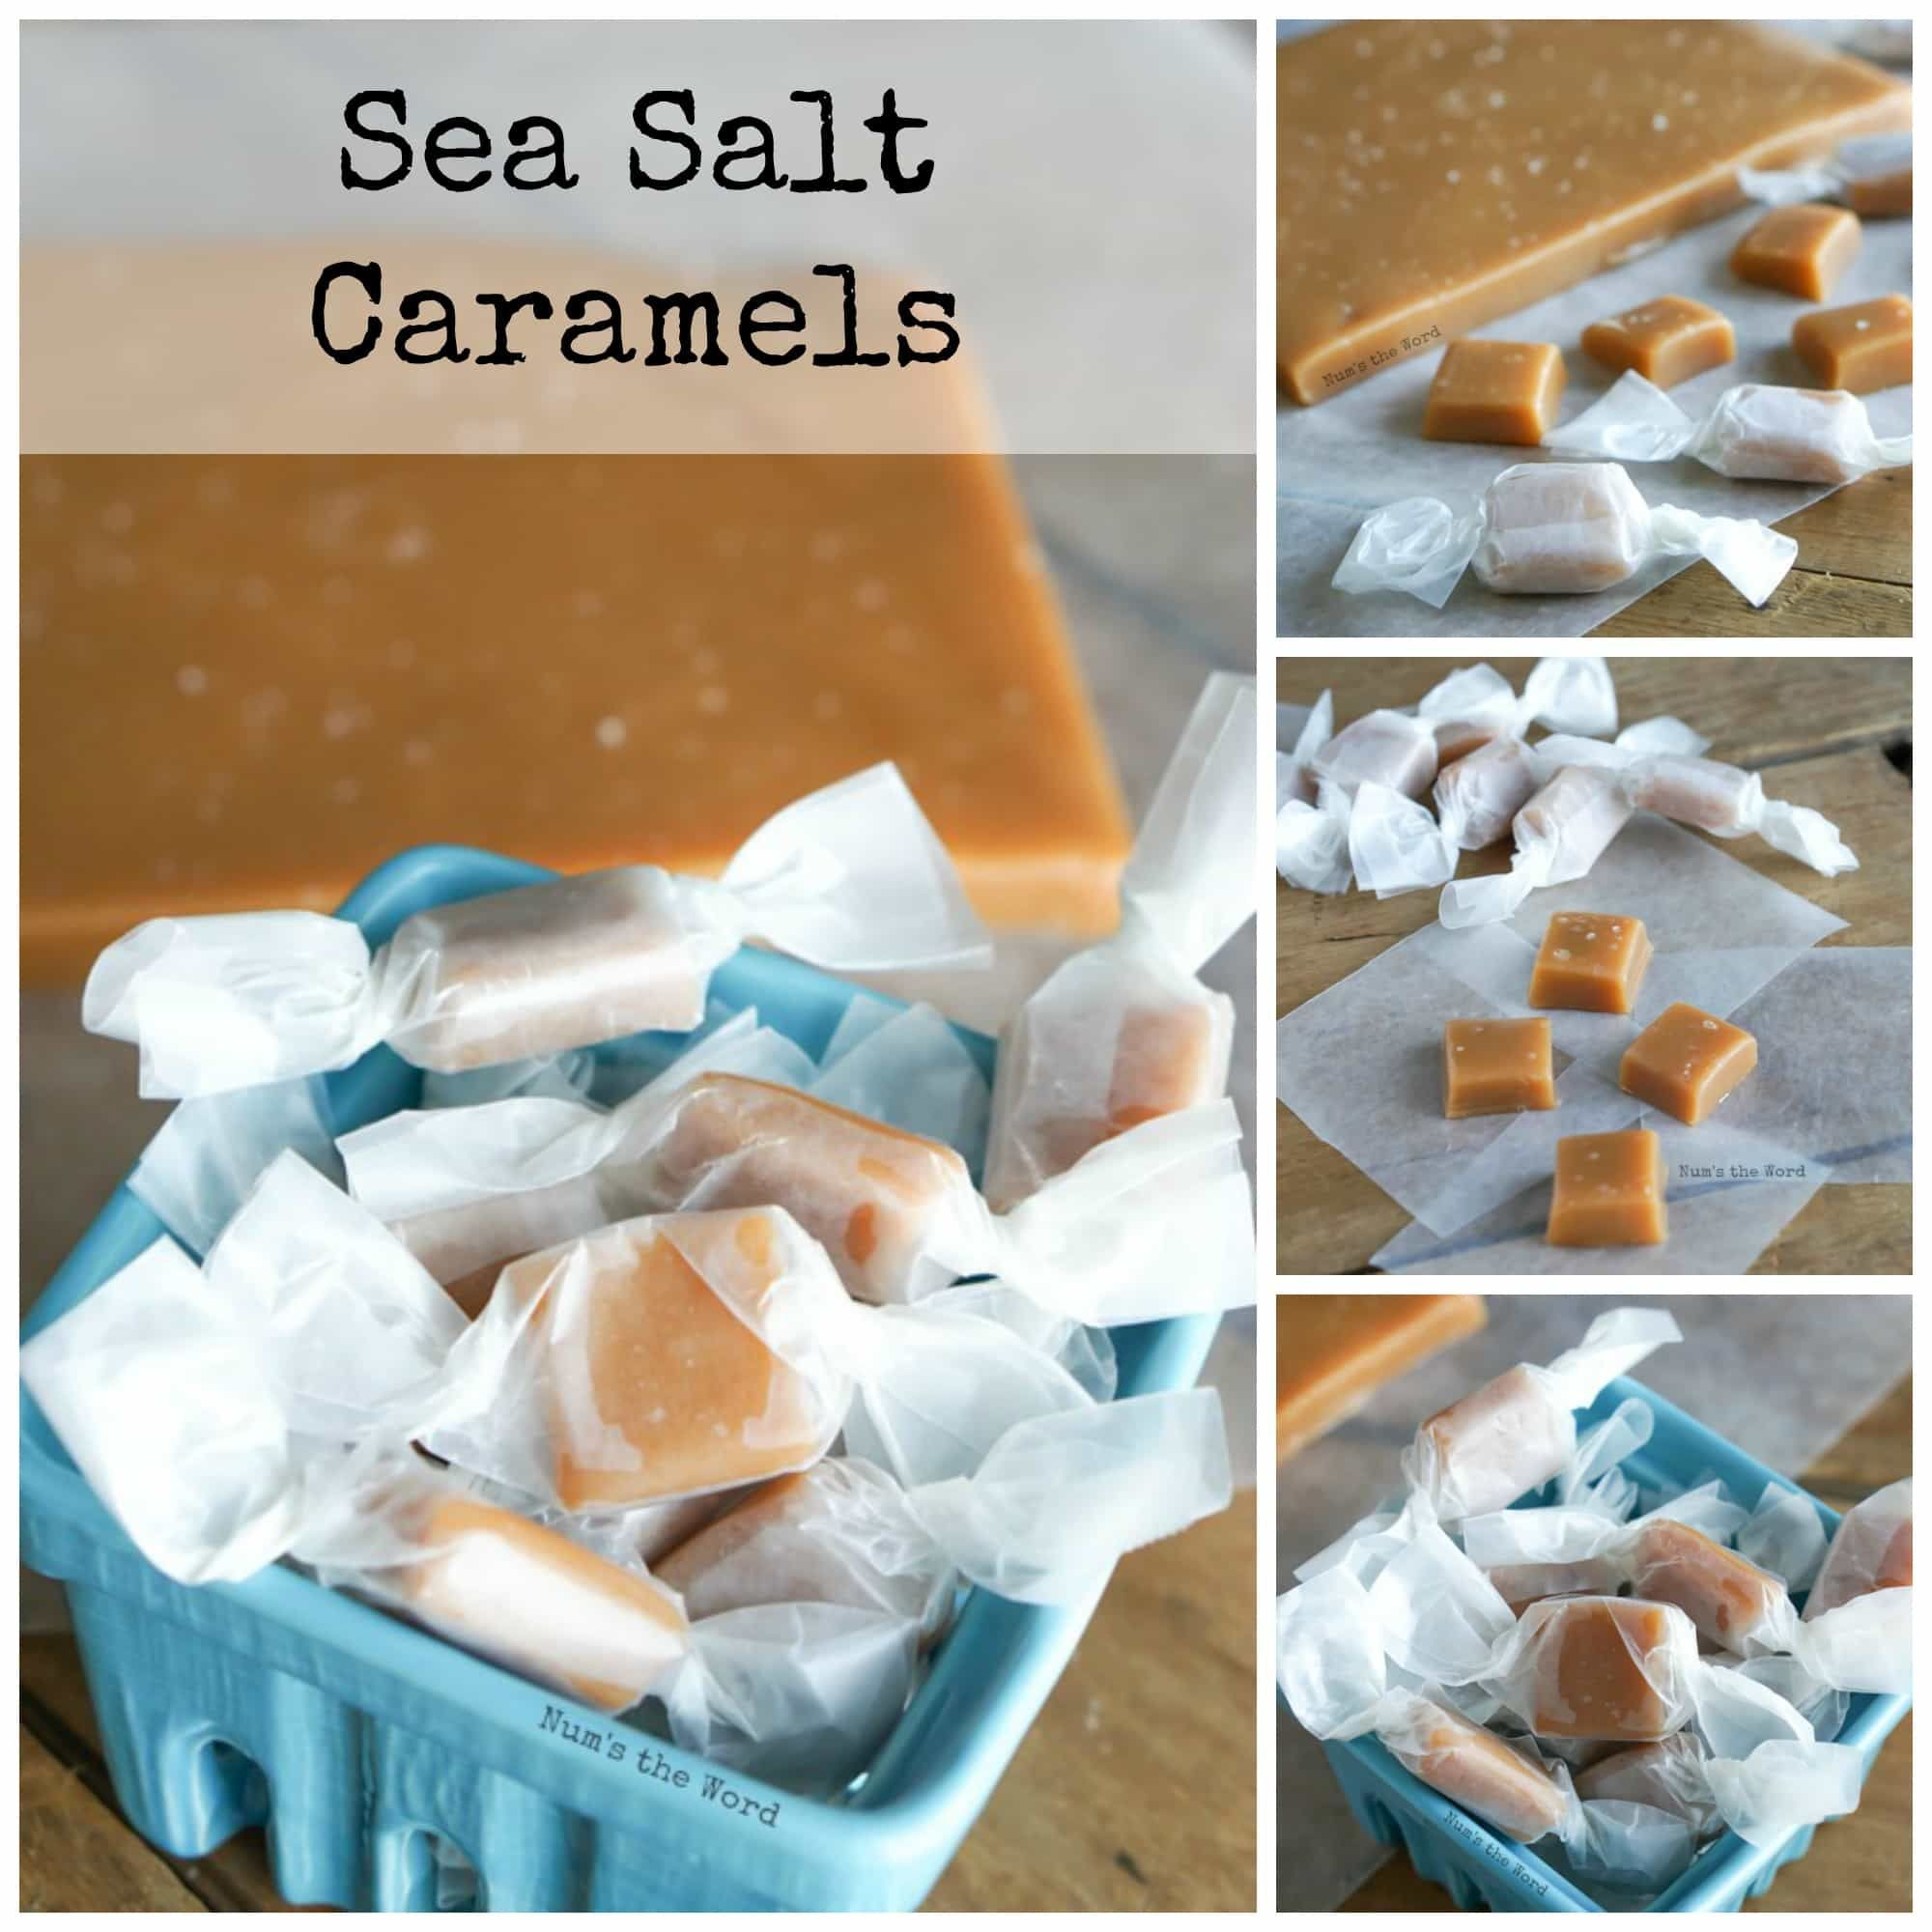 These Sea Salt Caramels are THE BEST CARAMELS ever. Rave